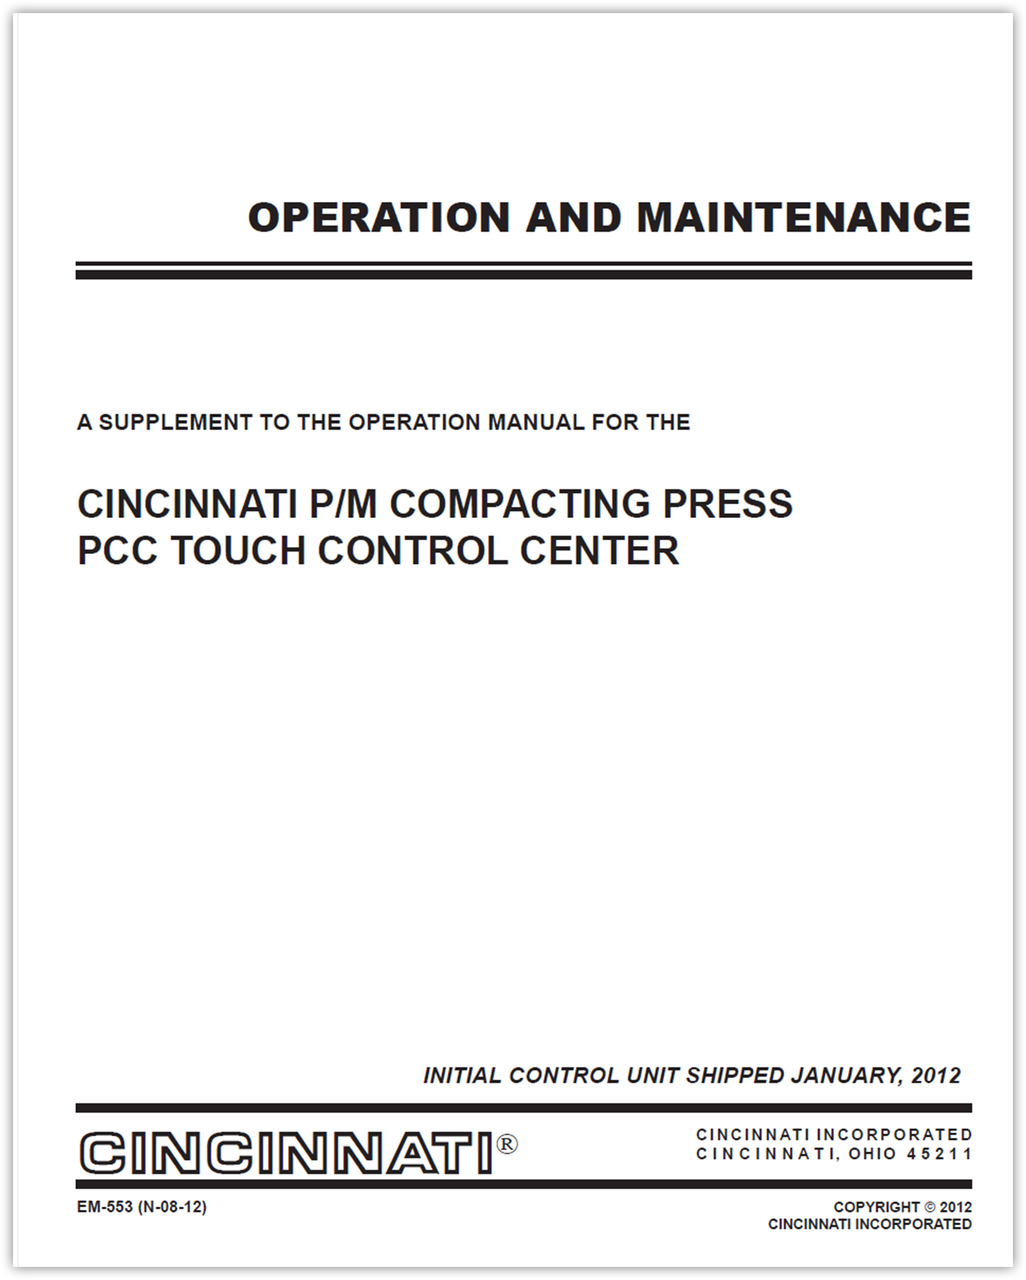 EM-553 (N-09-12) PCC Touch Control for Compacting Presses